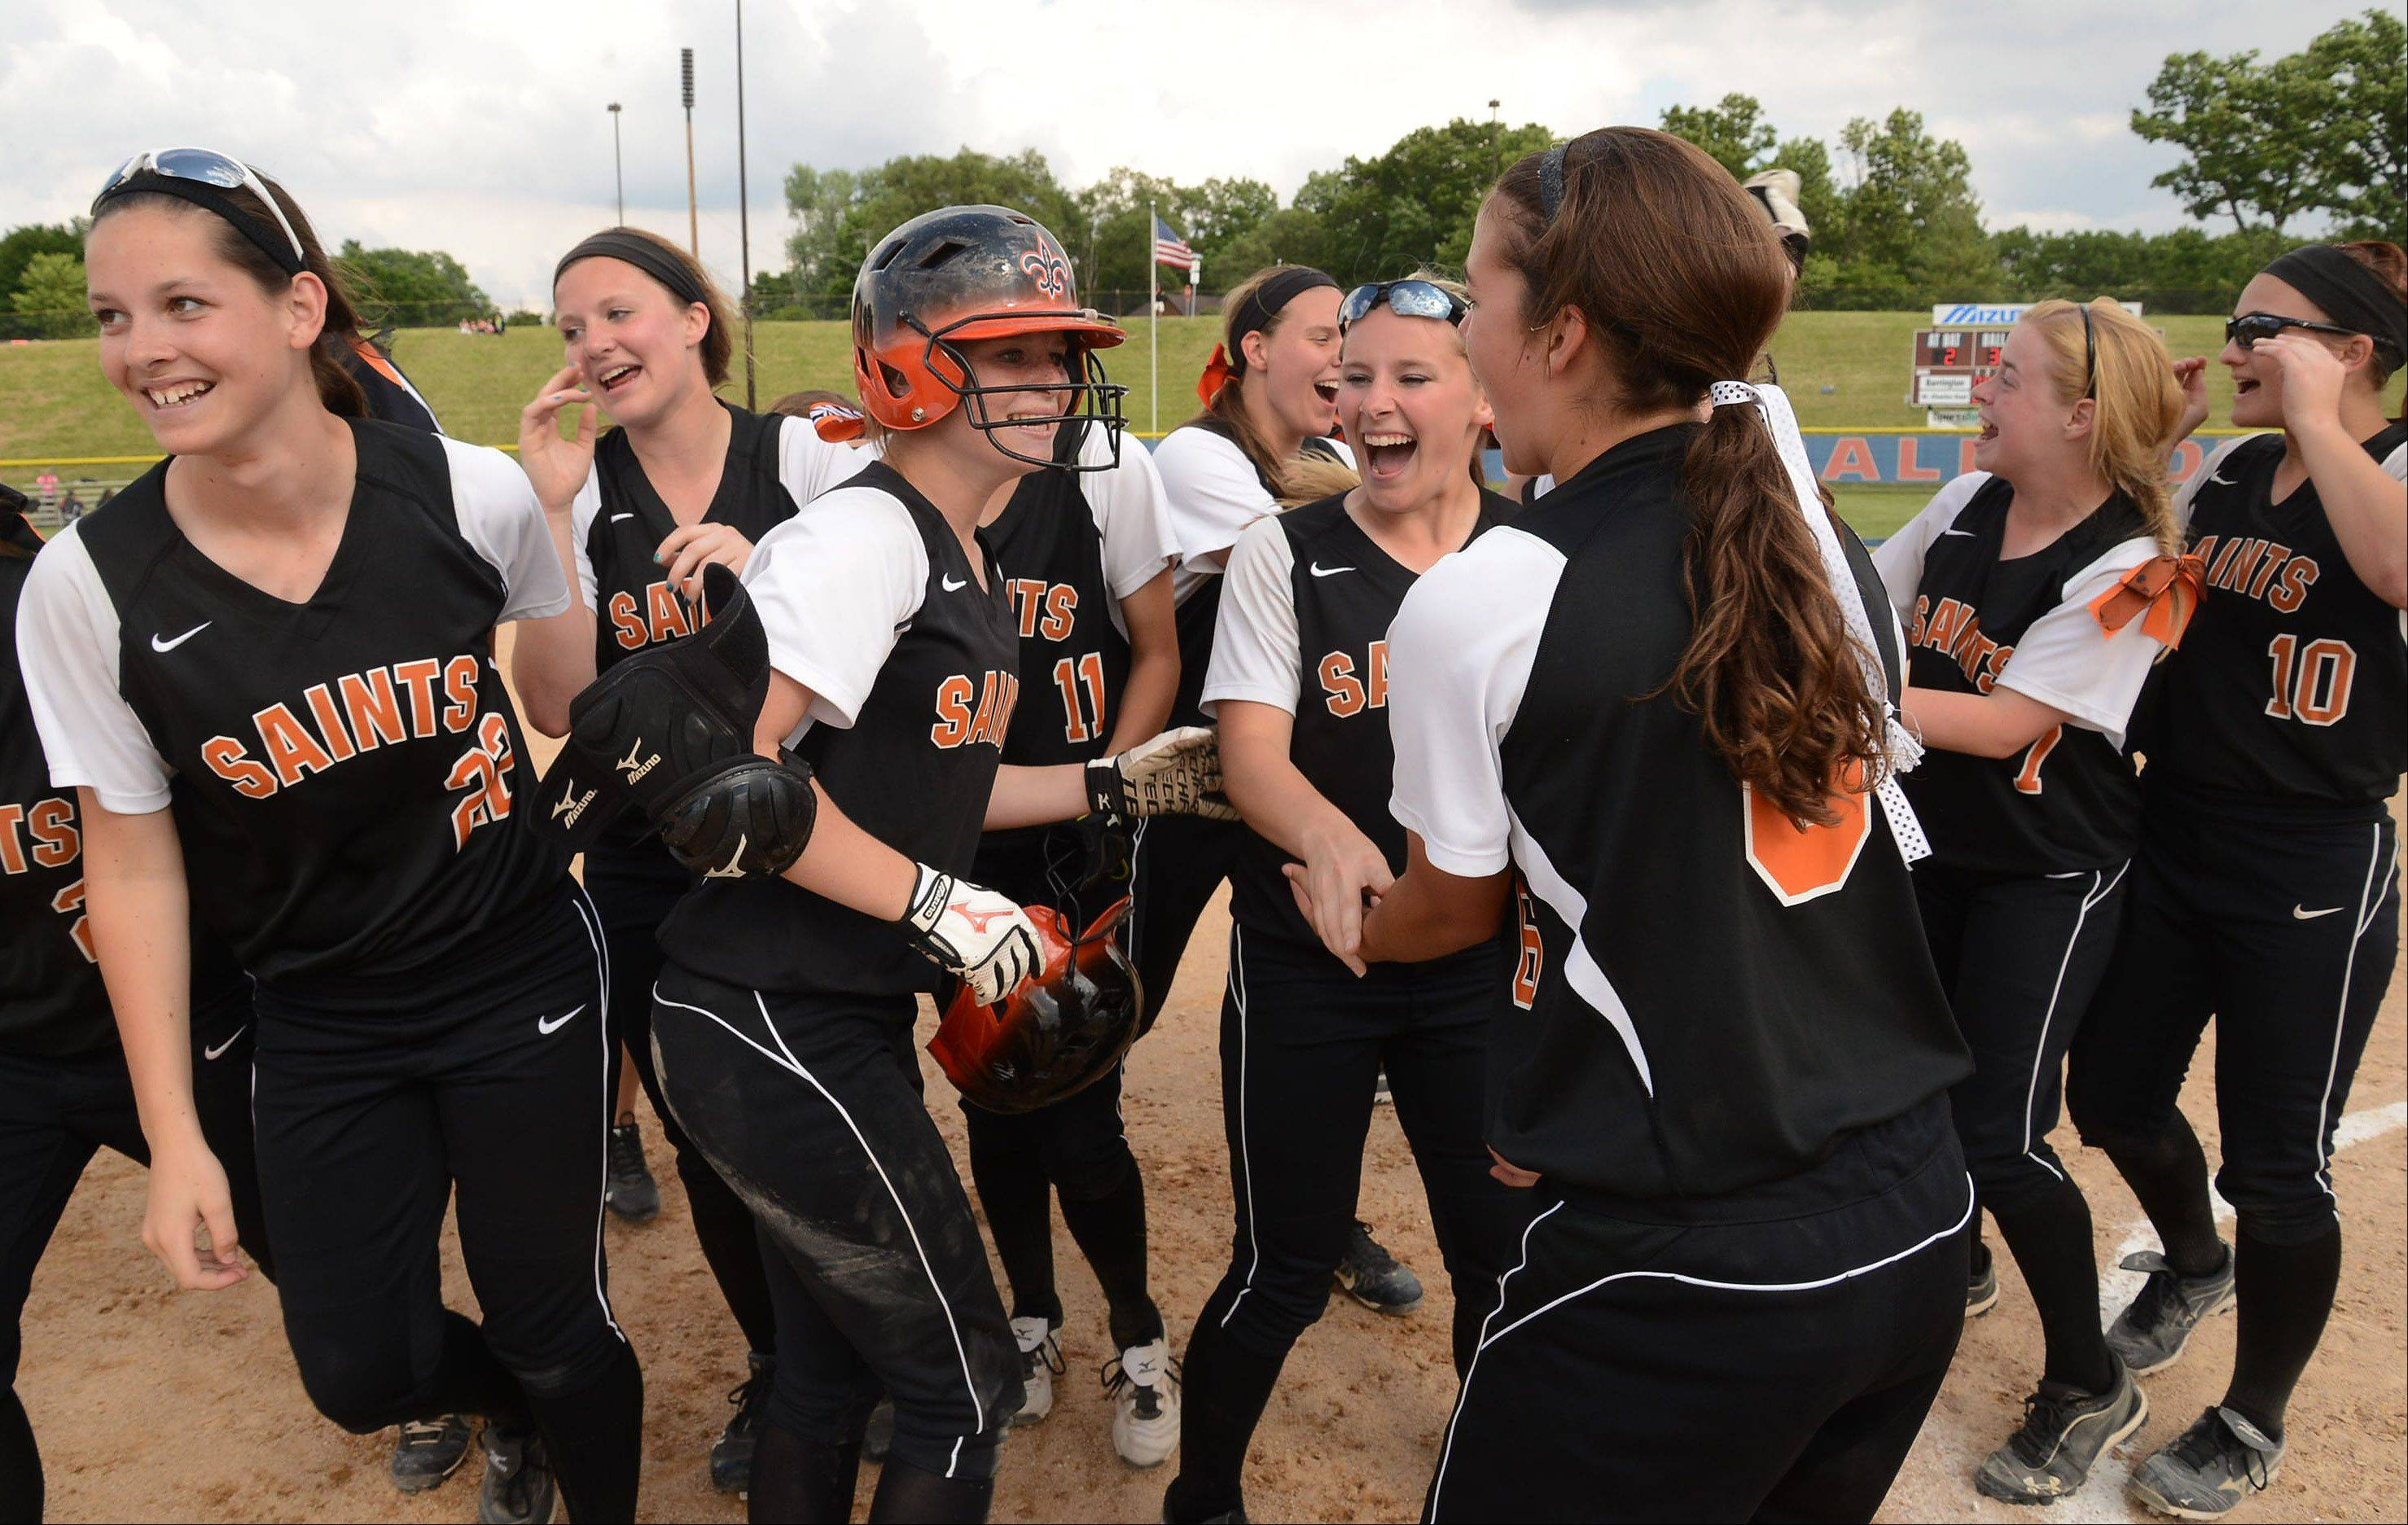 St. Charles East celebrates after defeating Barrington in the bottom of the seventh inning on a game-winning two-out double by Olivia Lorenzini in the Class 4A state semifinals.